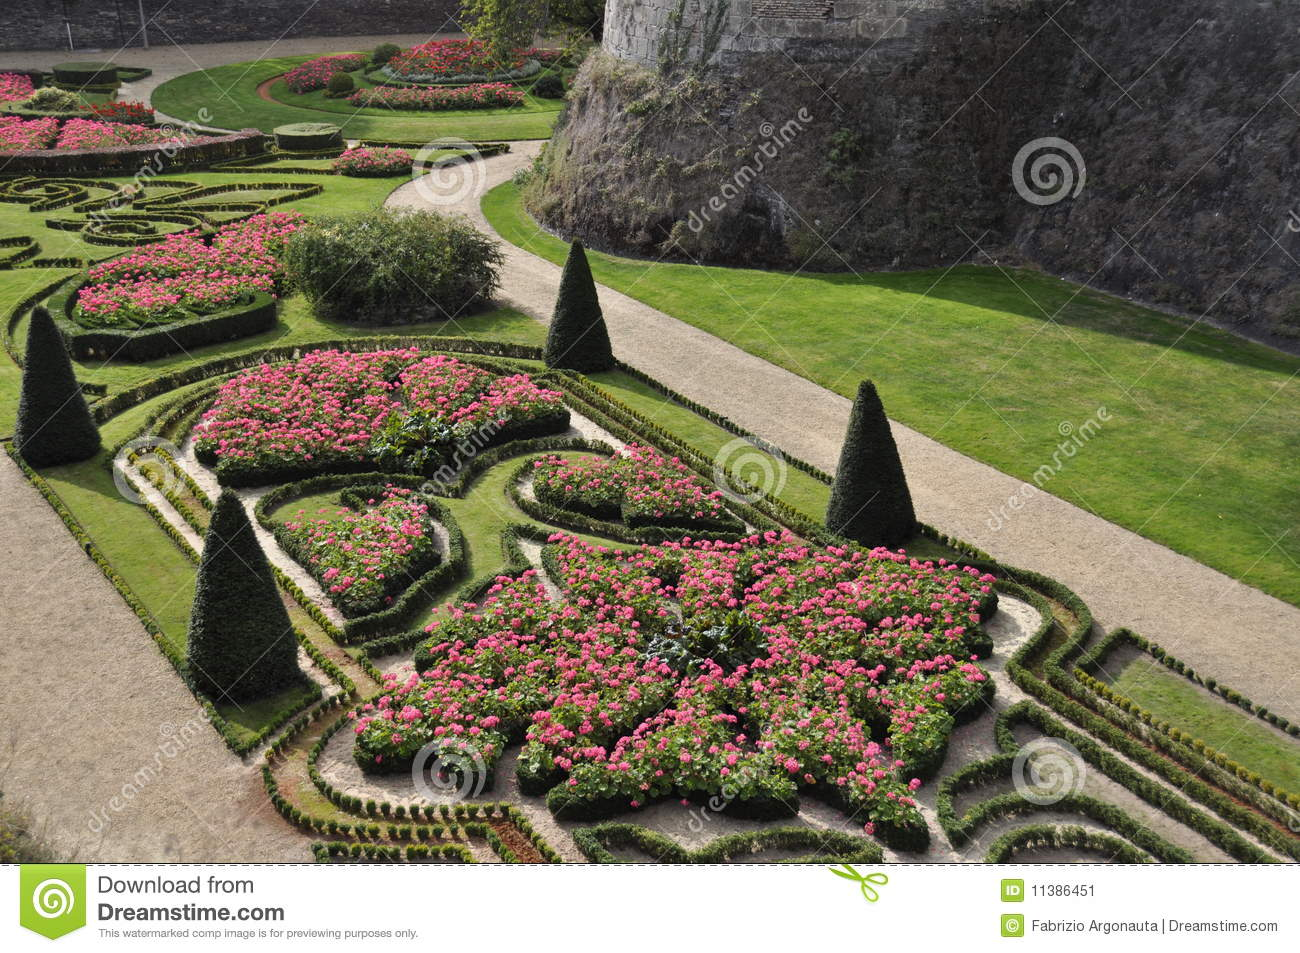 ... Garden Design With Landscaped Gardens Stock Image Image: With  Landscaping Ideas For Large Backyards From